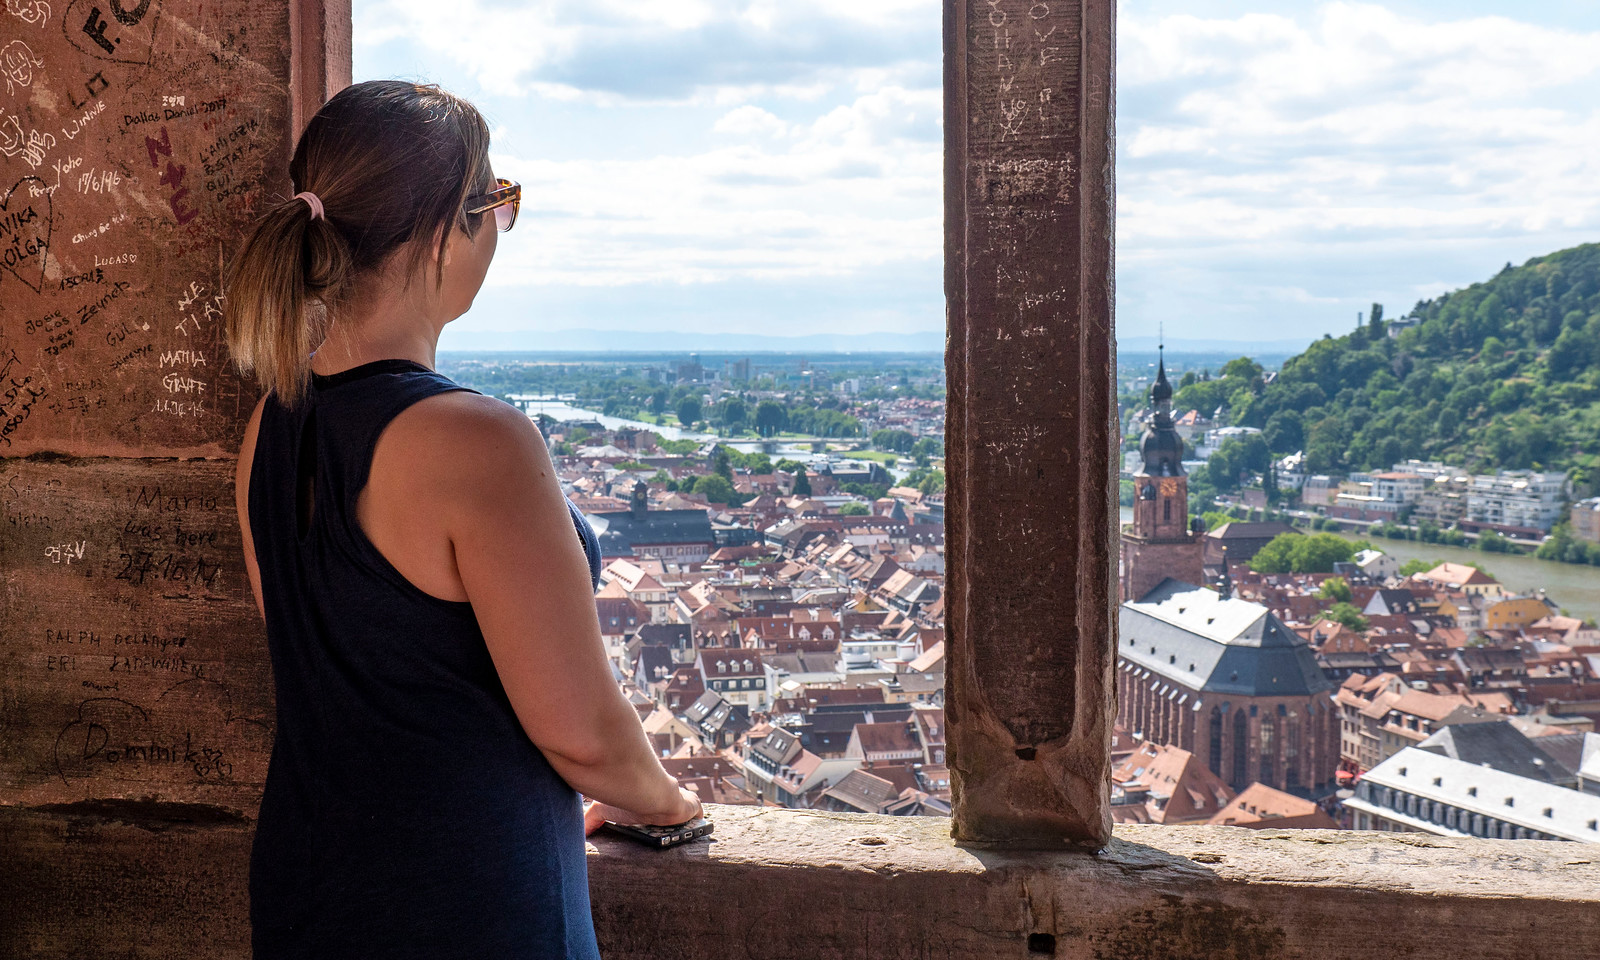 Spectacular Things to Do in Heidelberg Germany - Heidelberg Castle View